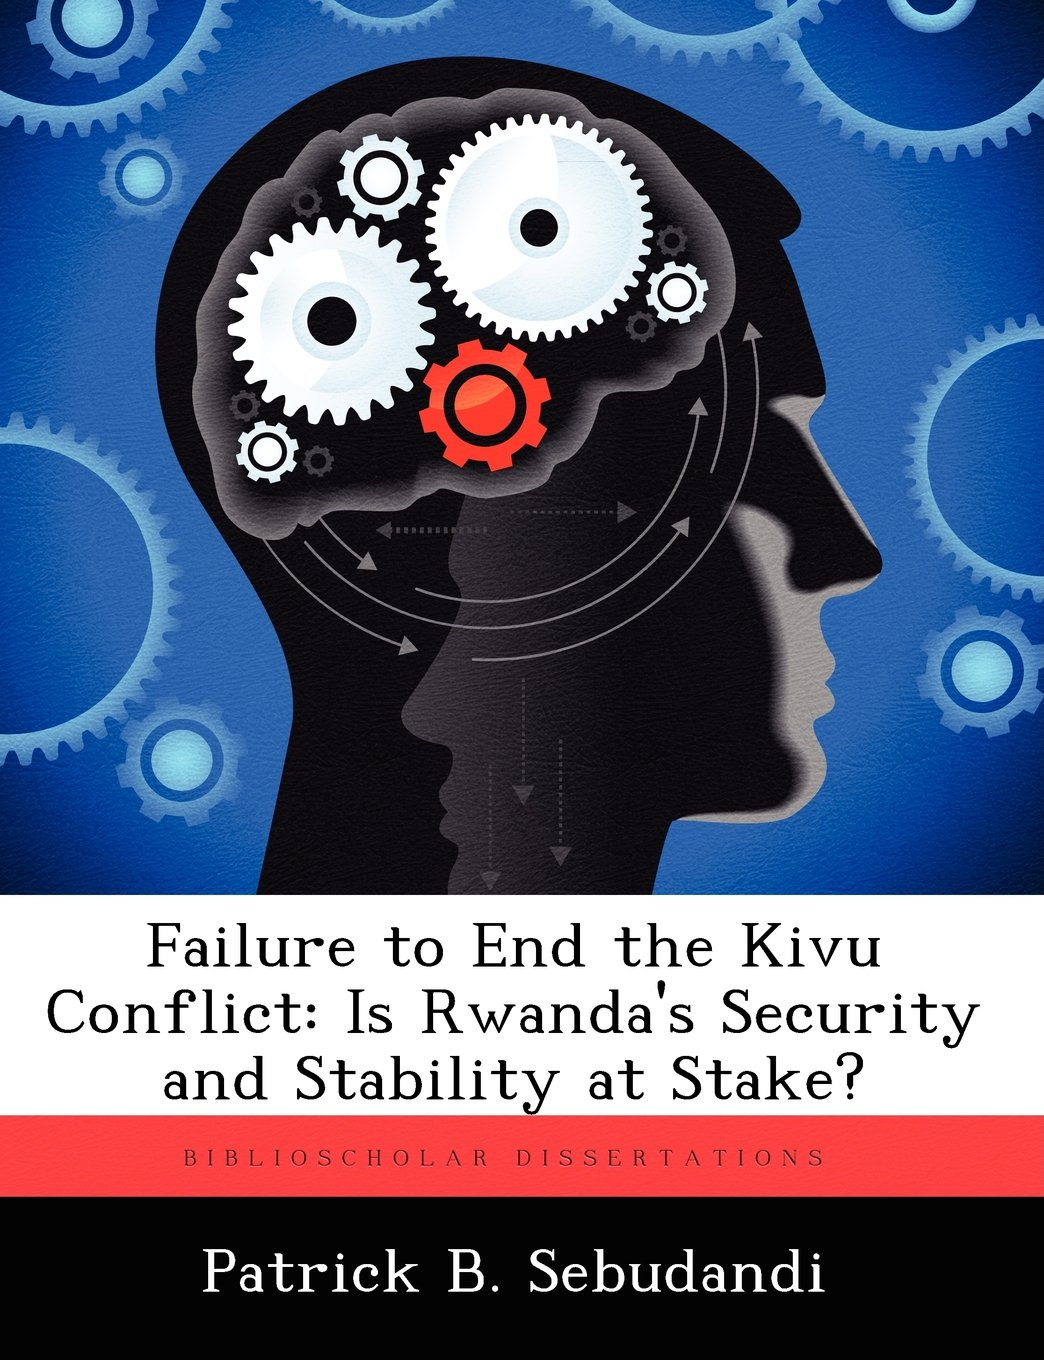 Failure to End the Kivu Conflict: Is Rwanda's Security and Stability at Stake? pdf epub